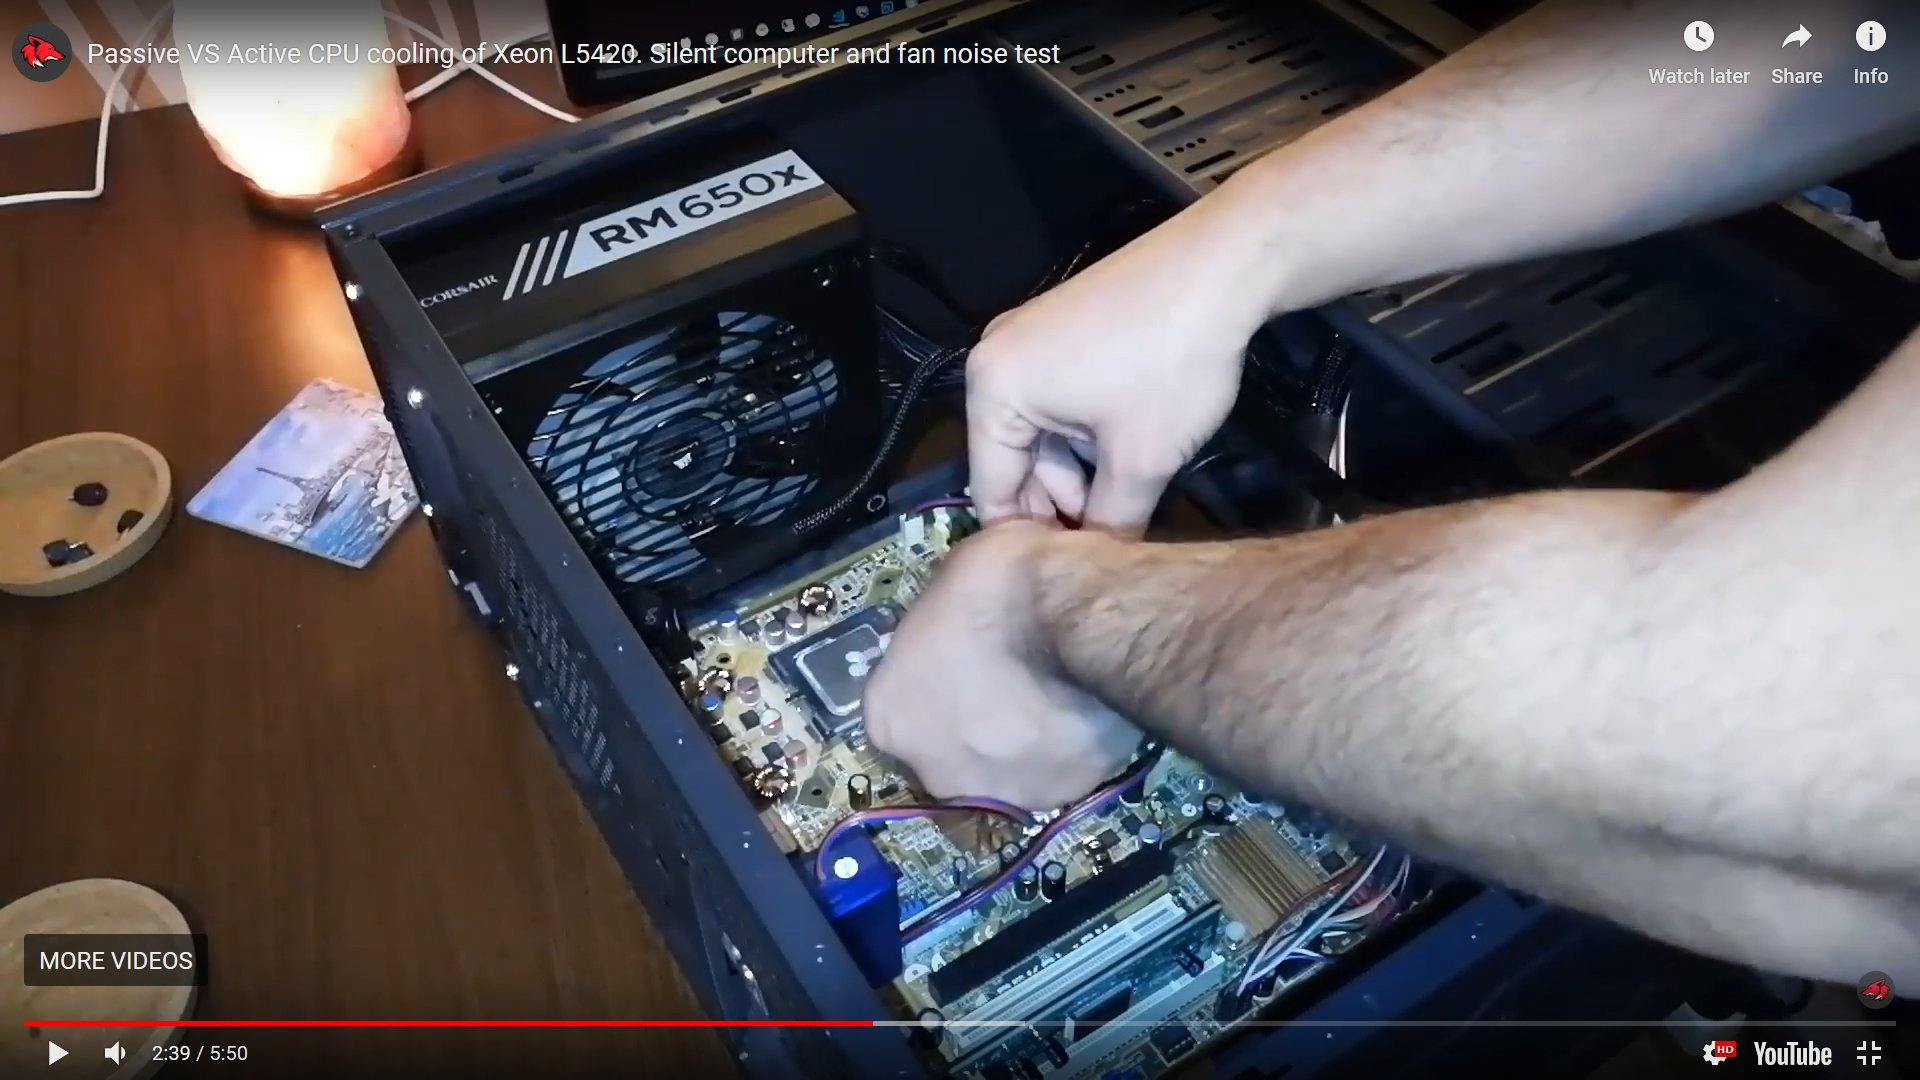 passive VS active CPU cooling